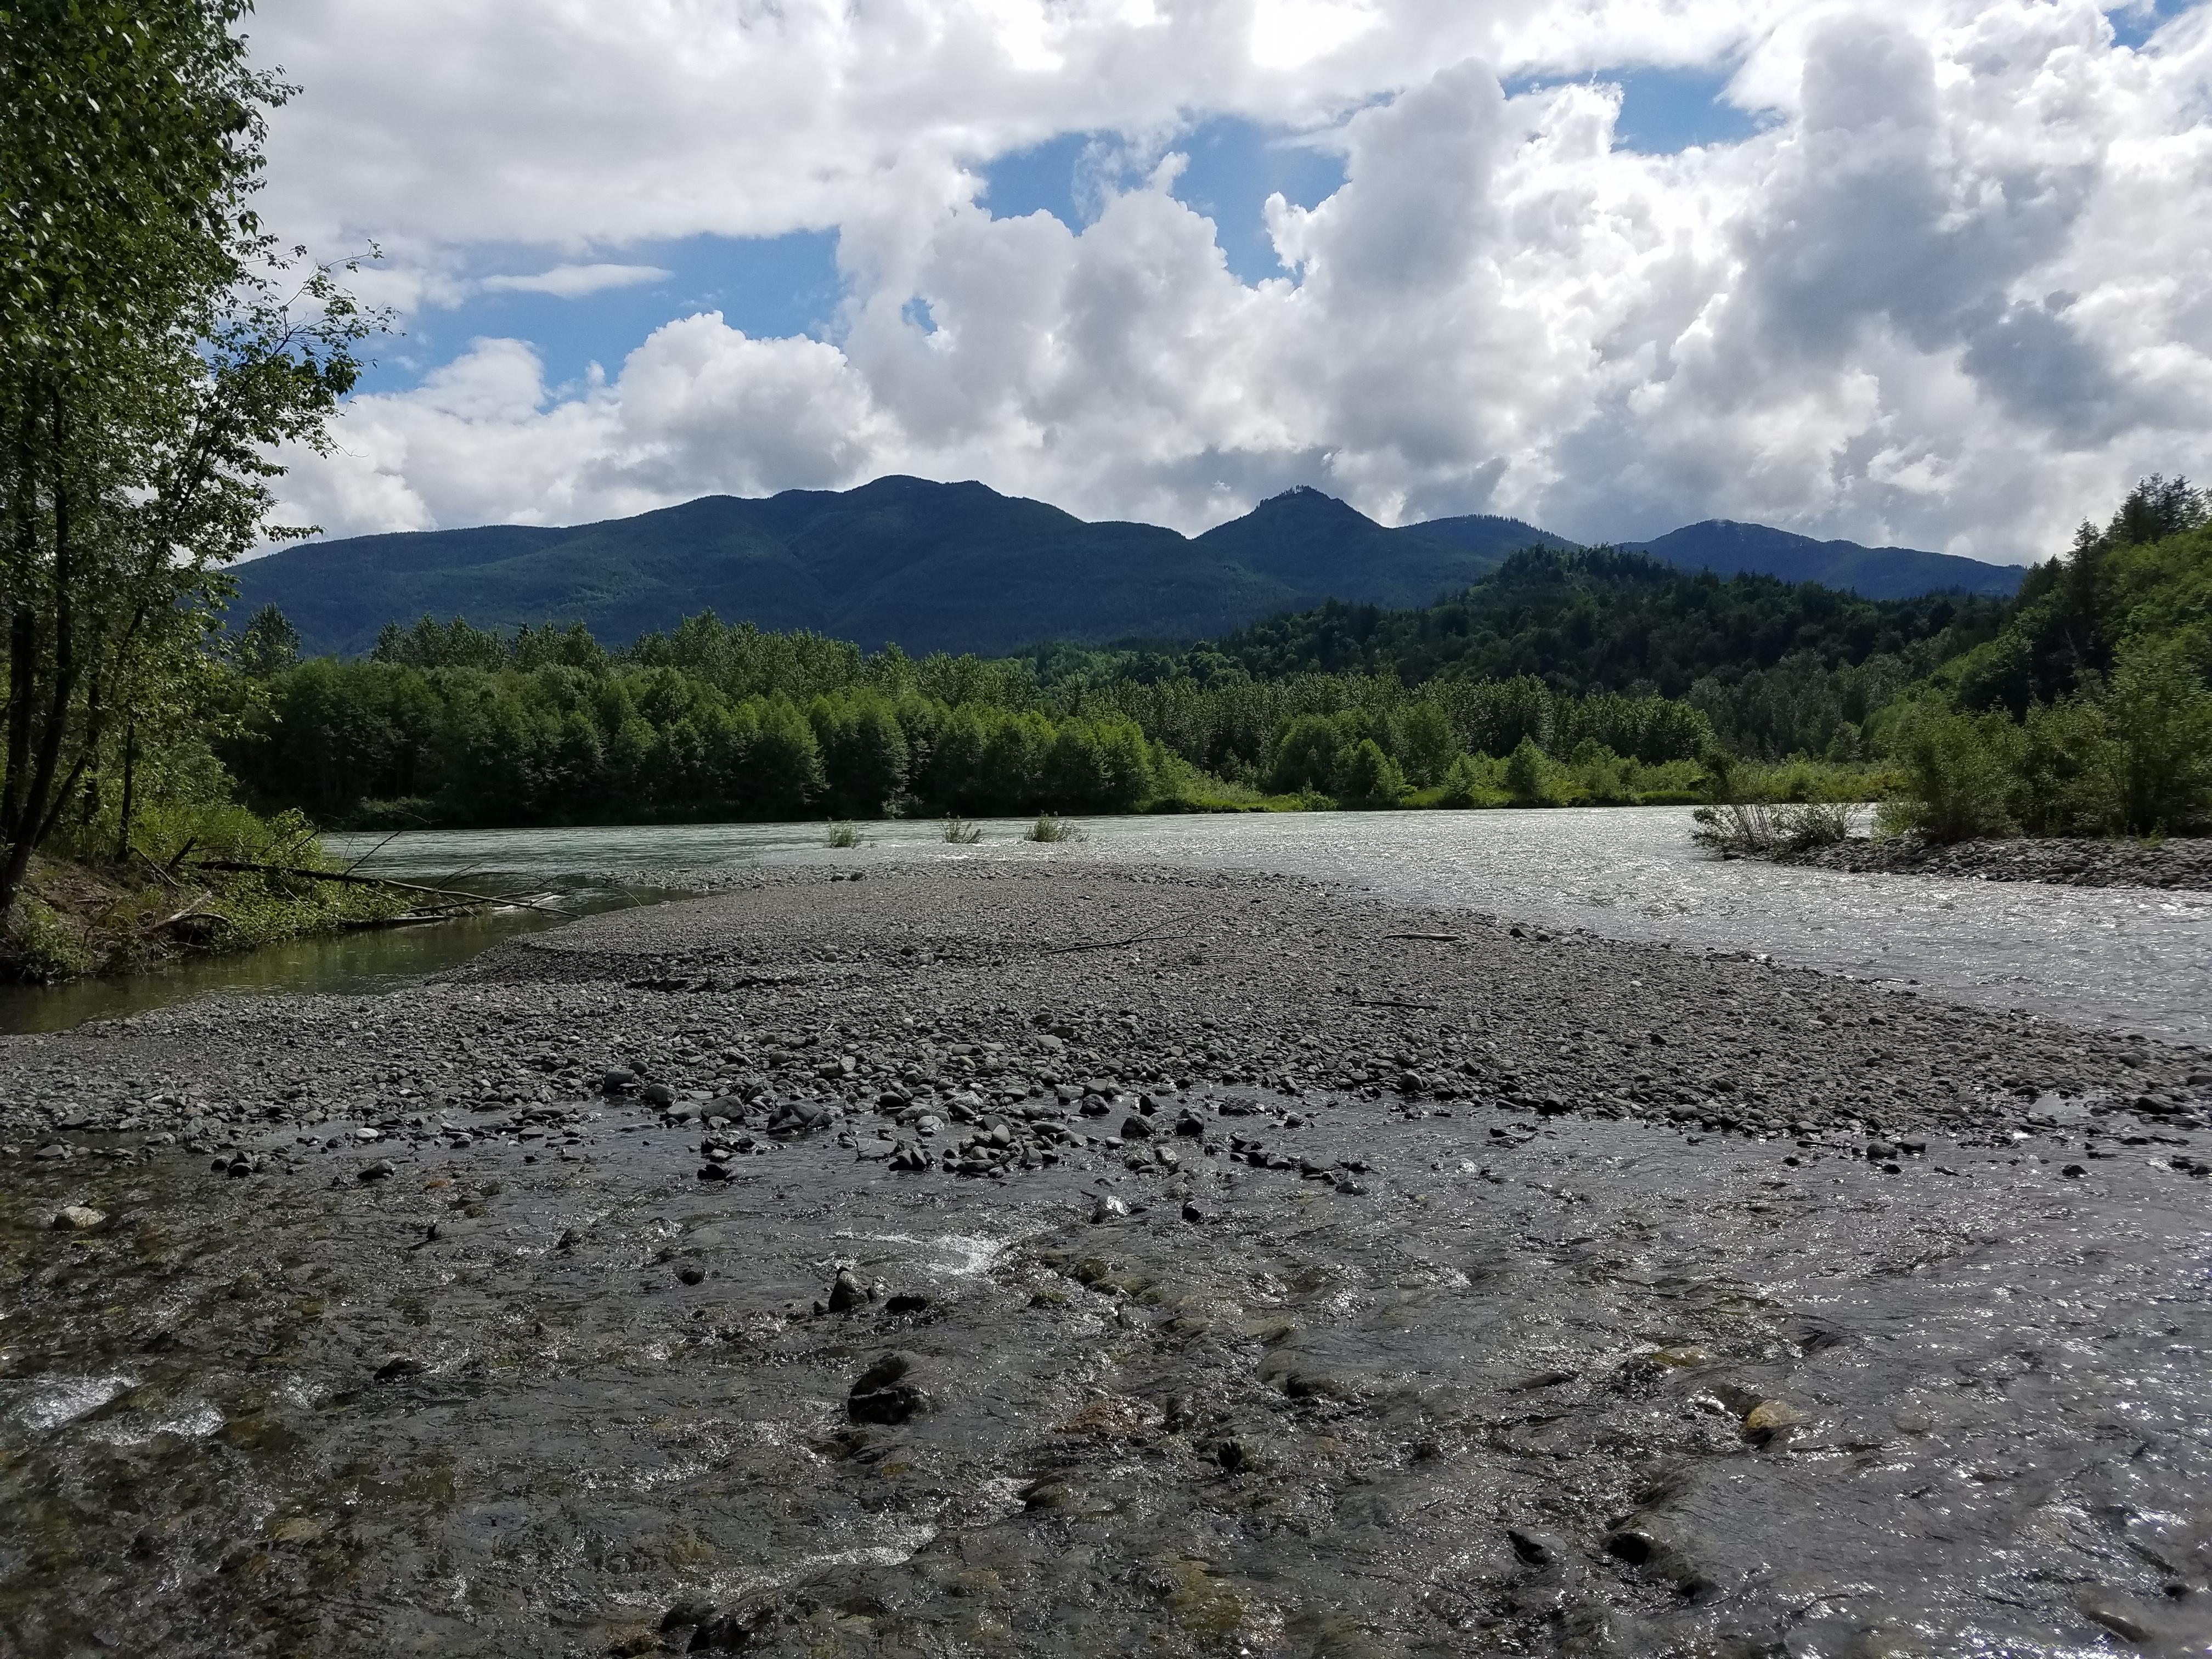 Jackman Creek Conservation Area preserves riparian habitat along the Skagit River. Photograph credit: Skagit Land Trust staff.